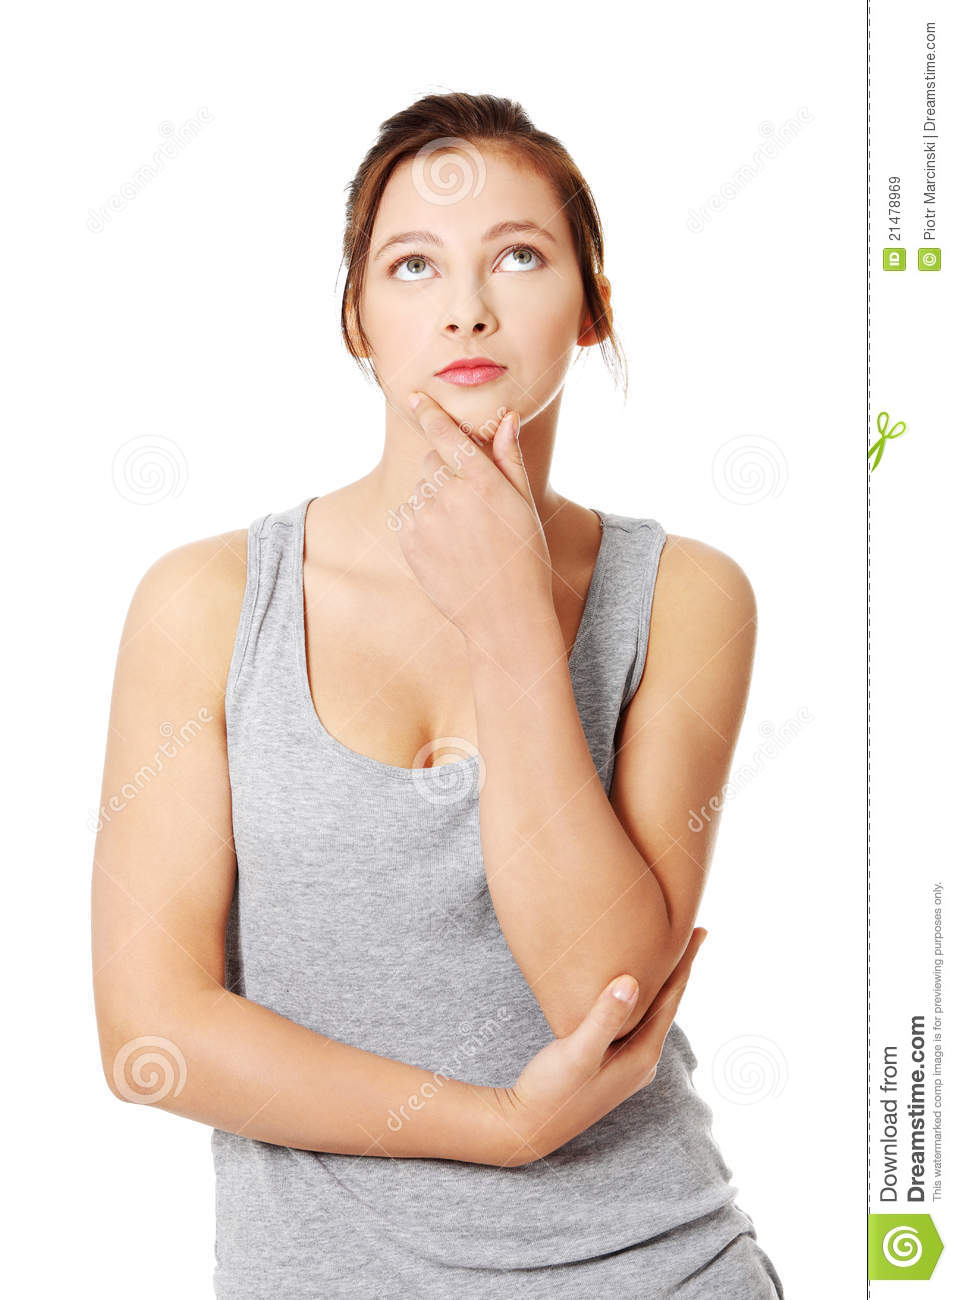 Beautiful Teenage Girl Is Thinking And Looking Up. Stock Image ... b73a26e0b